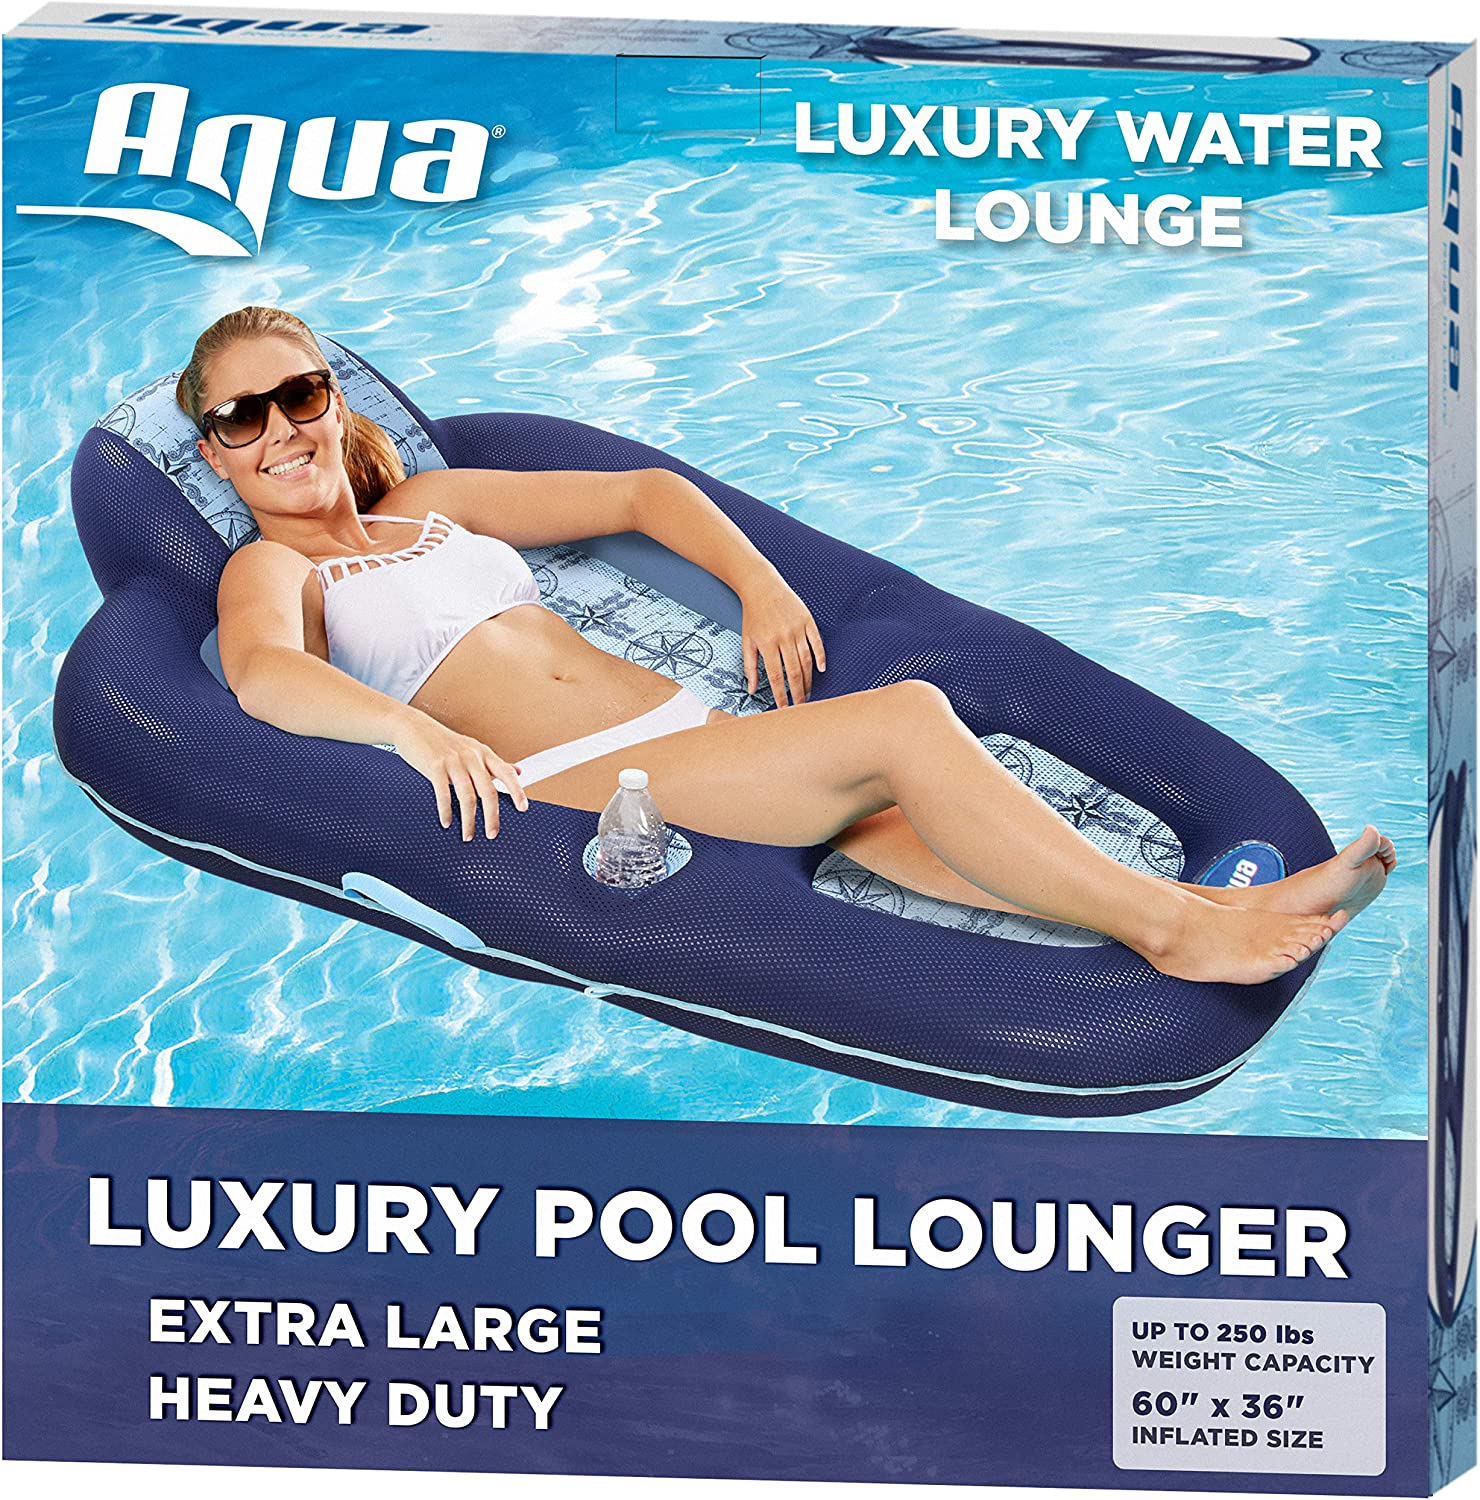 Aqua Luxury Water Lounge, X-Large, Inflatable Pool Float with Headrest, Backrest & Footrest, Navy/Light Blue